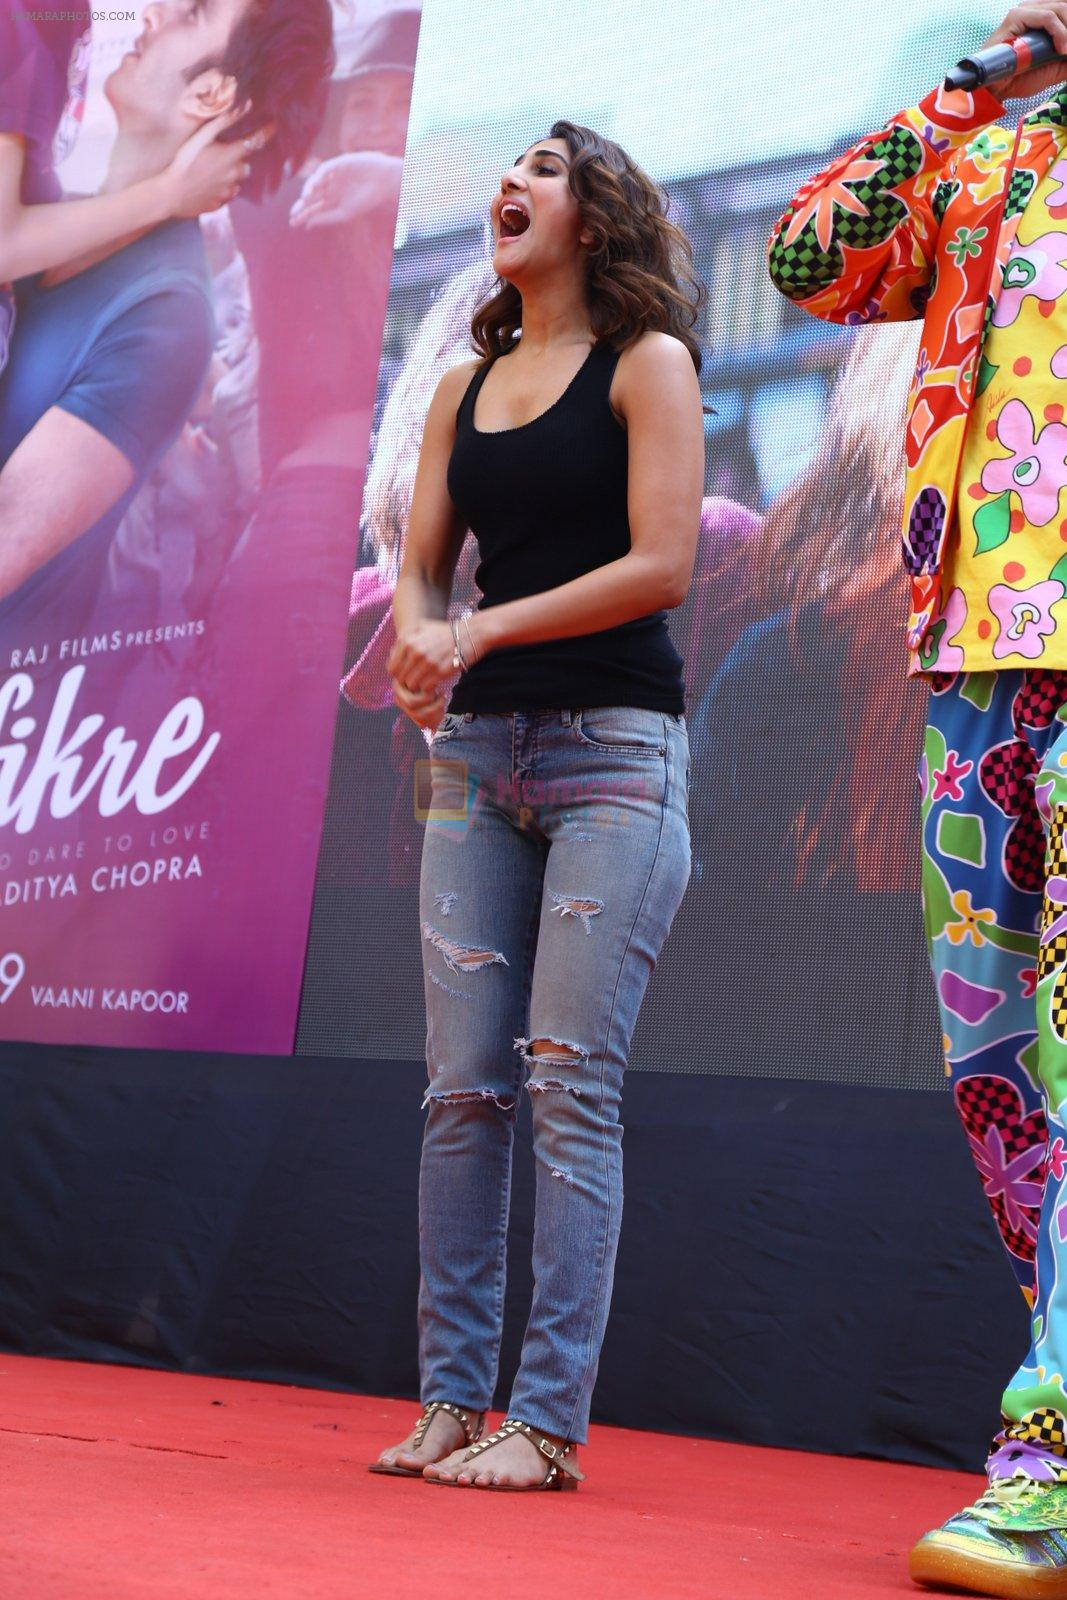 Vaani Kapoor promote Befikre in Delhi University on 24th Nov 2016